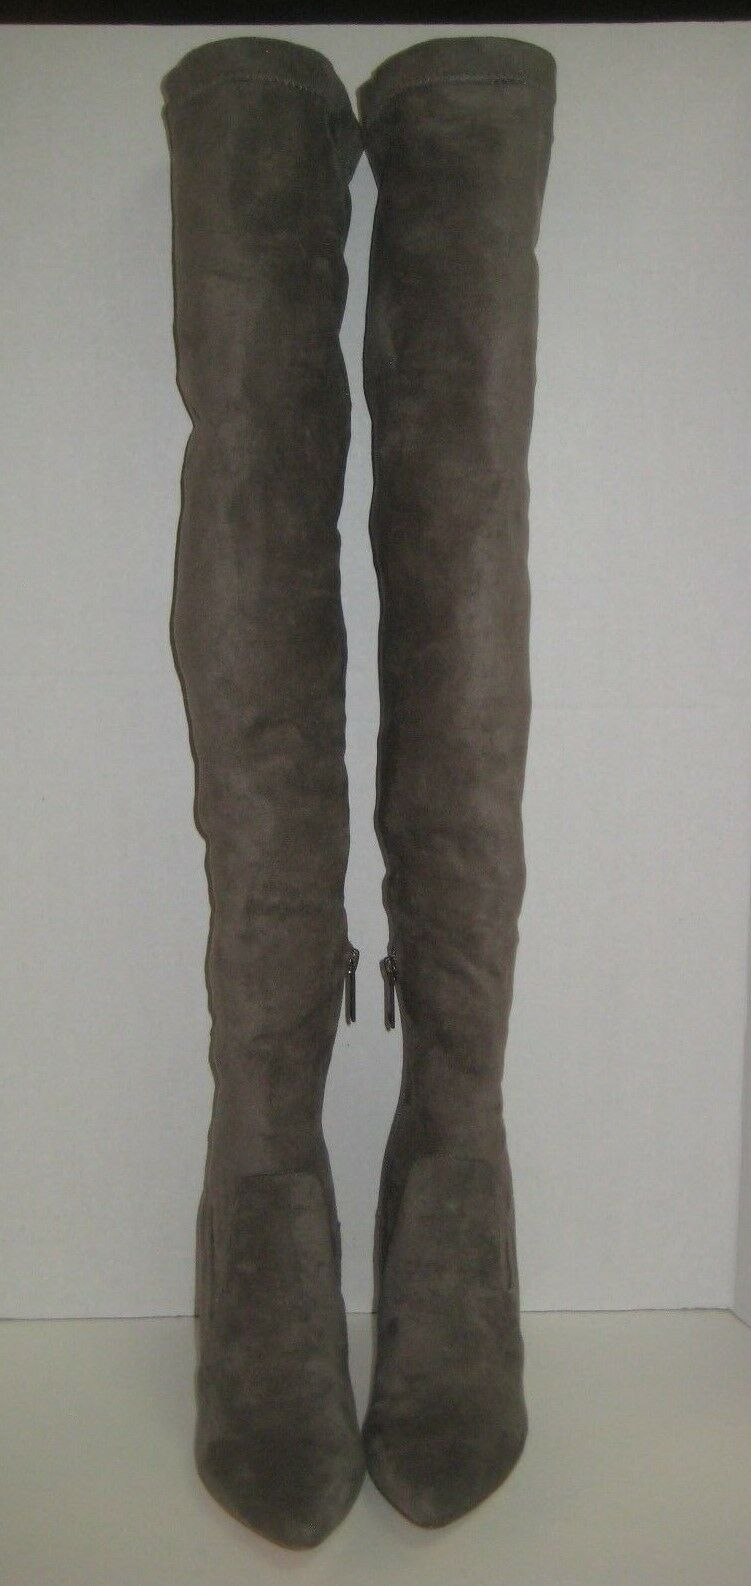 JOIE JEMINA OVER THE KNEE SUEDE BOOTS BOOTS BOOTS OLIVE BROWN SIZE 36   6 3665fe